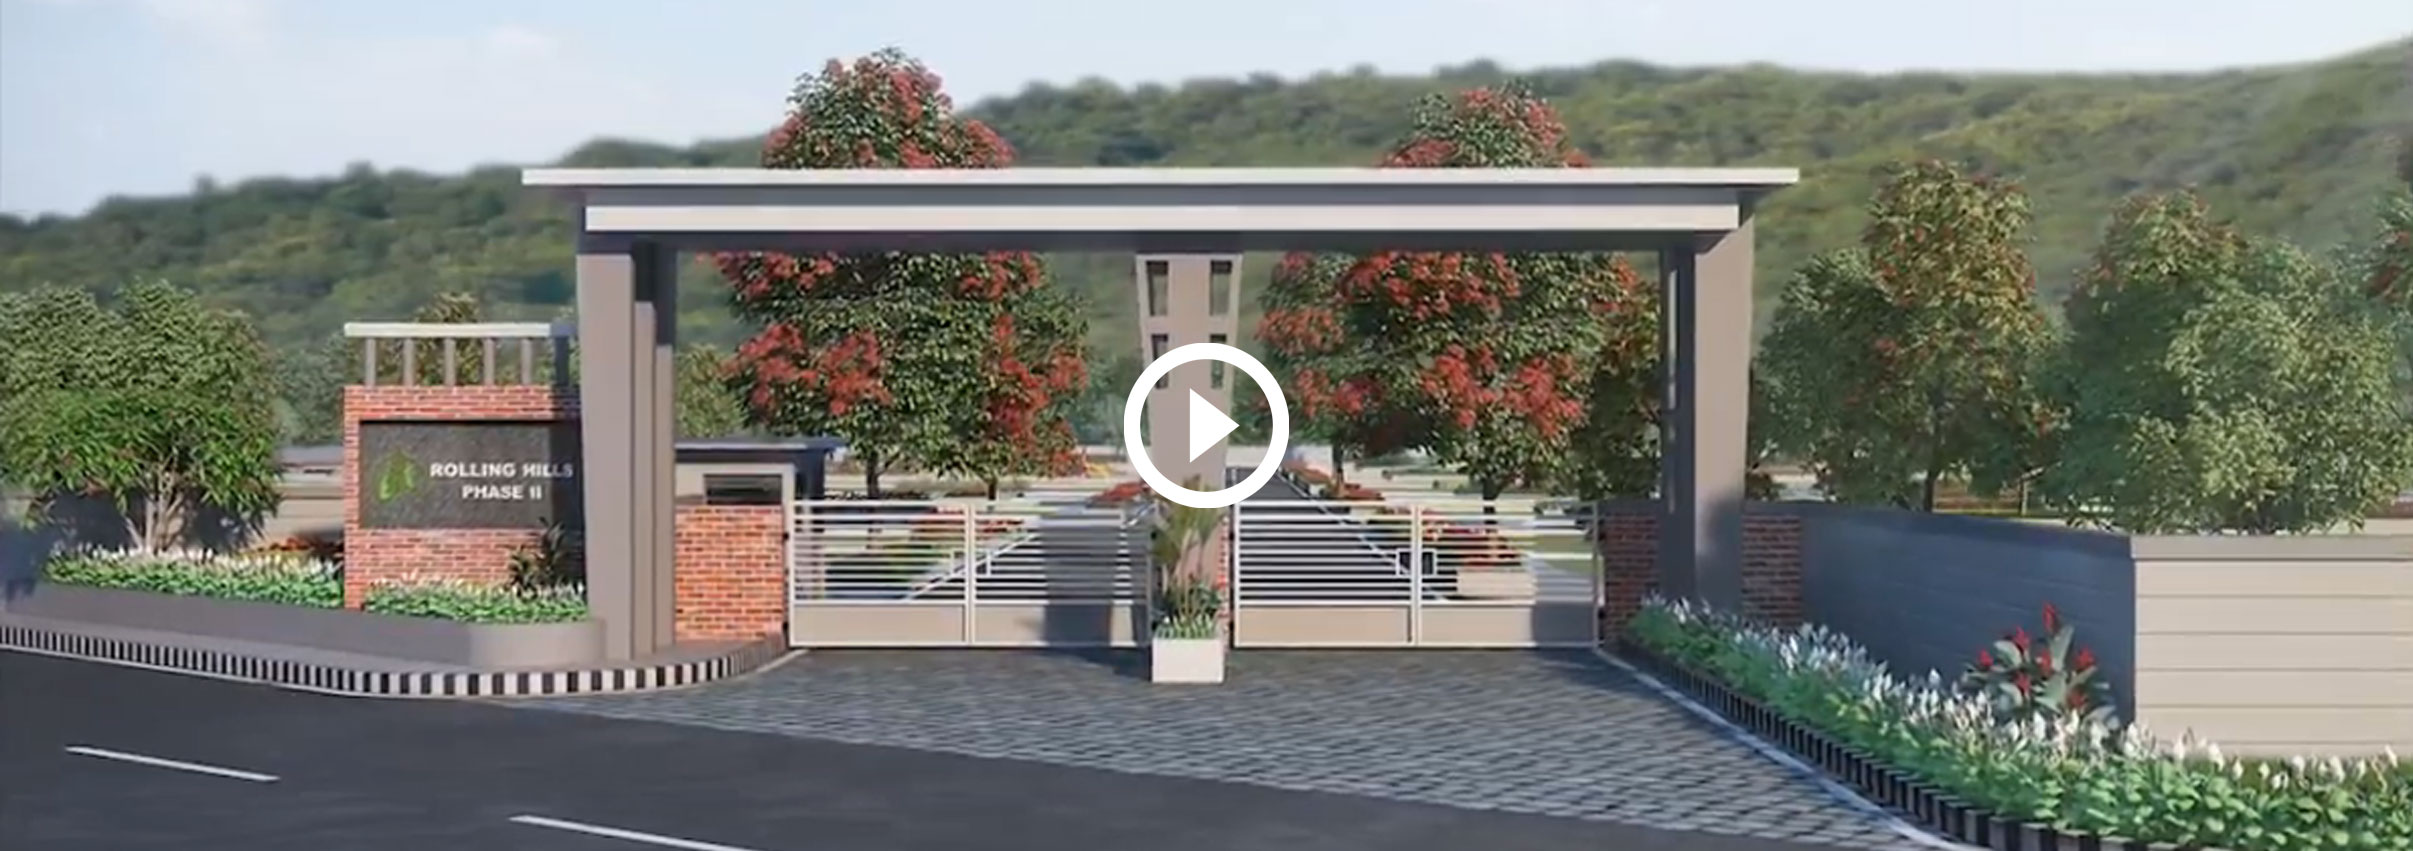 Rolling Hills Phase - II Video